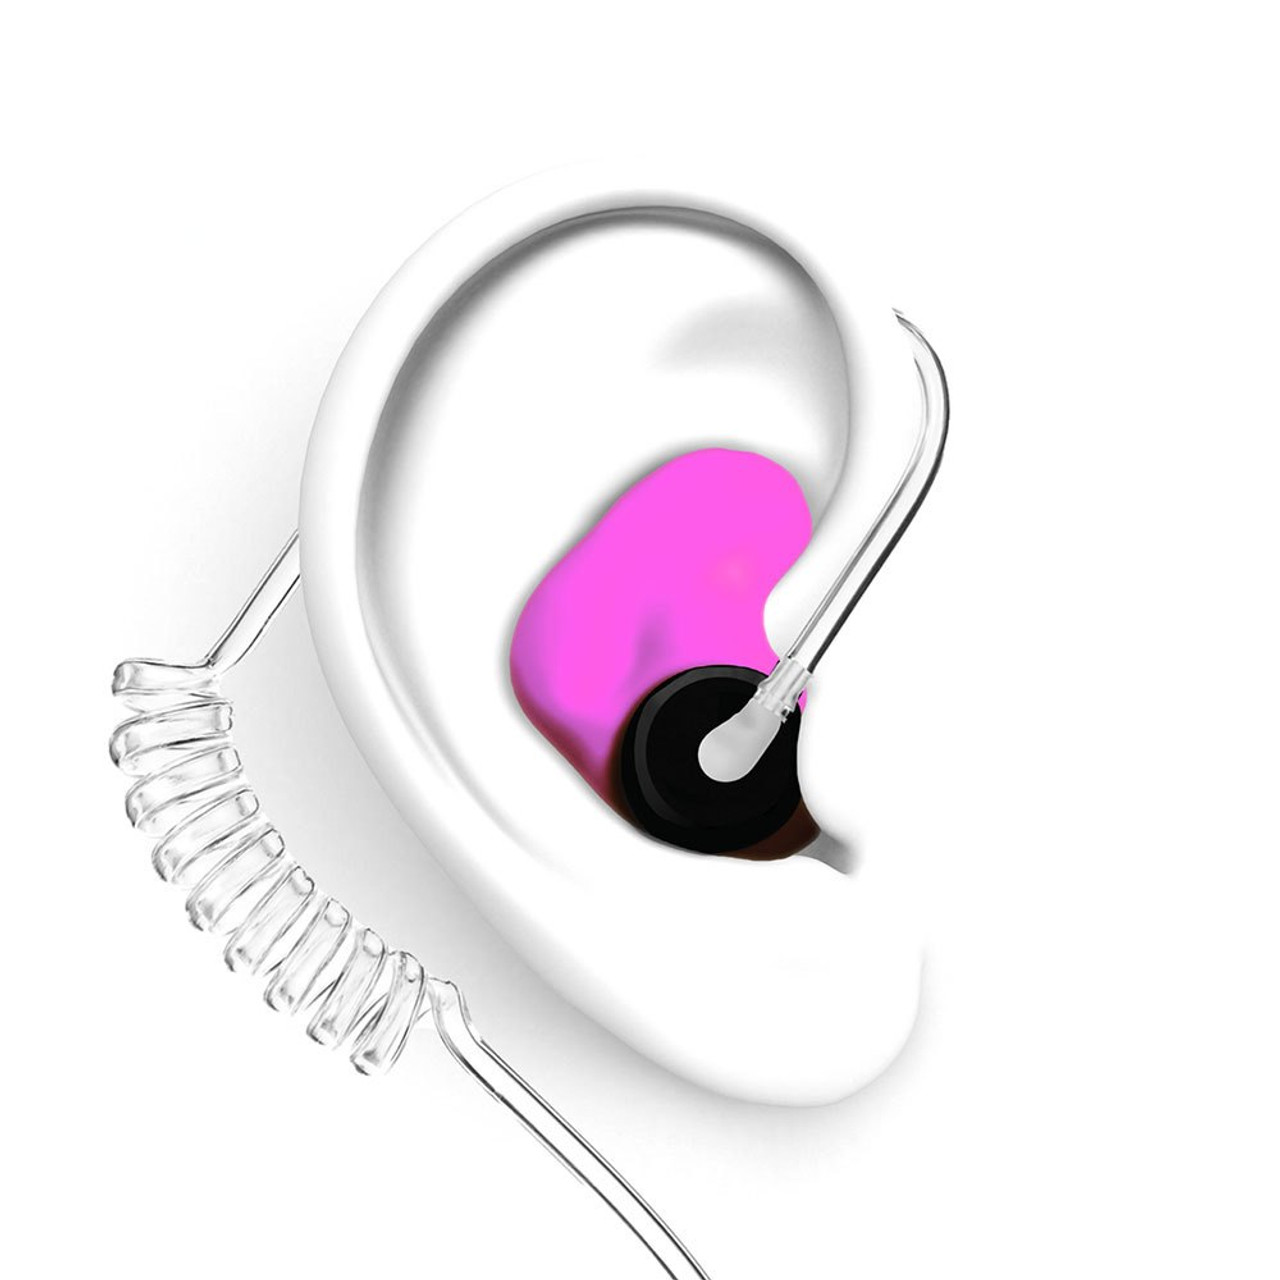 DECIBULLZ Pink Two Way Radio Headset Ear Plug